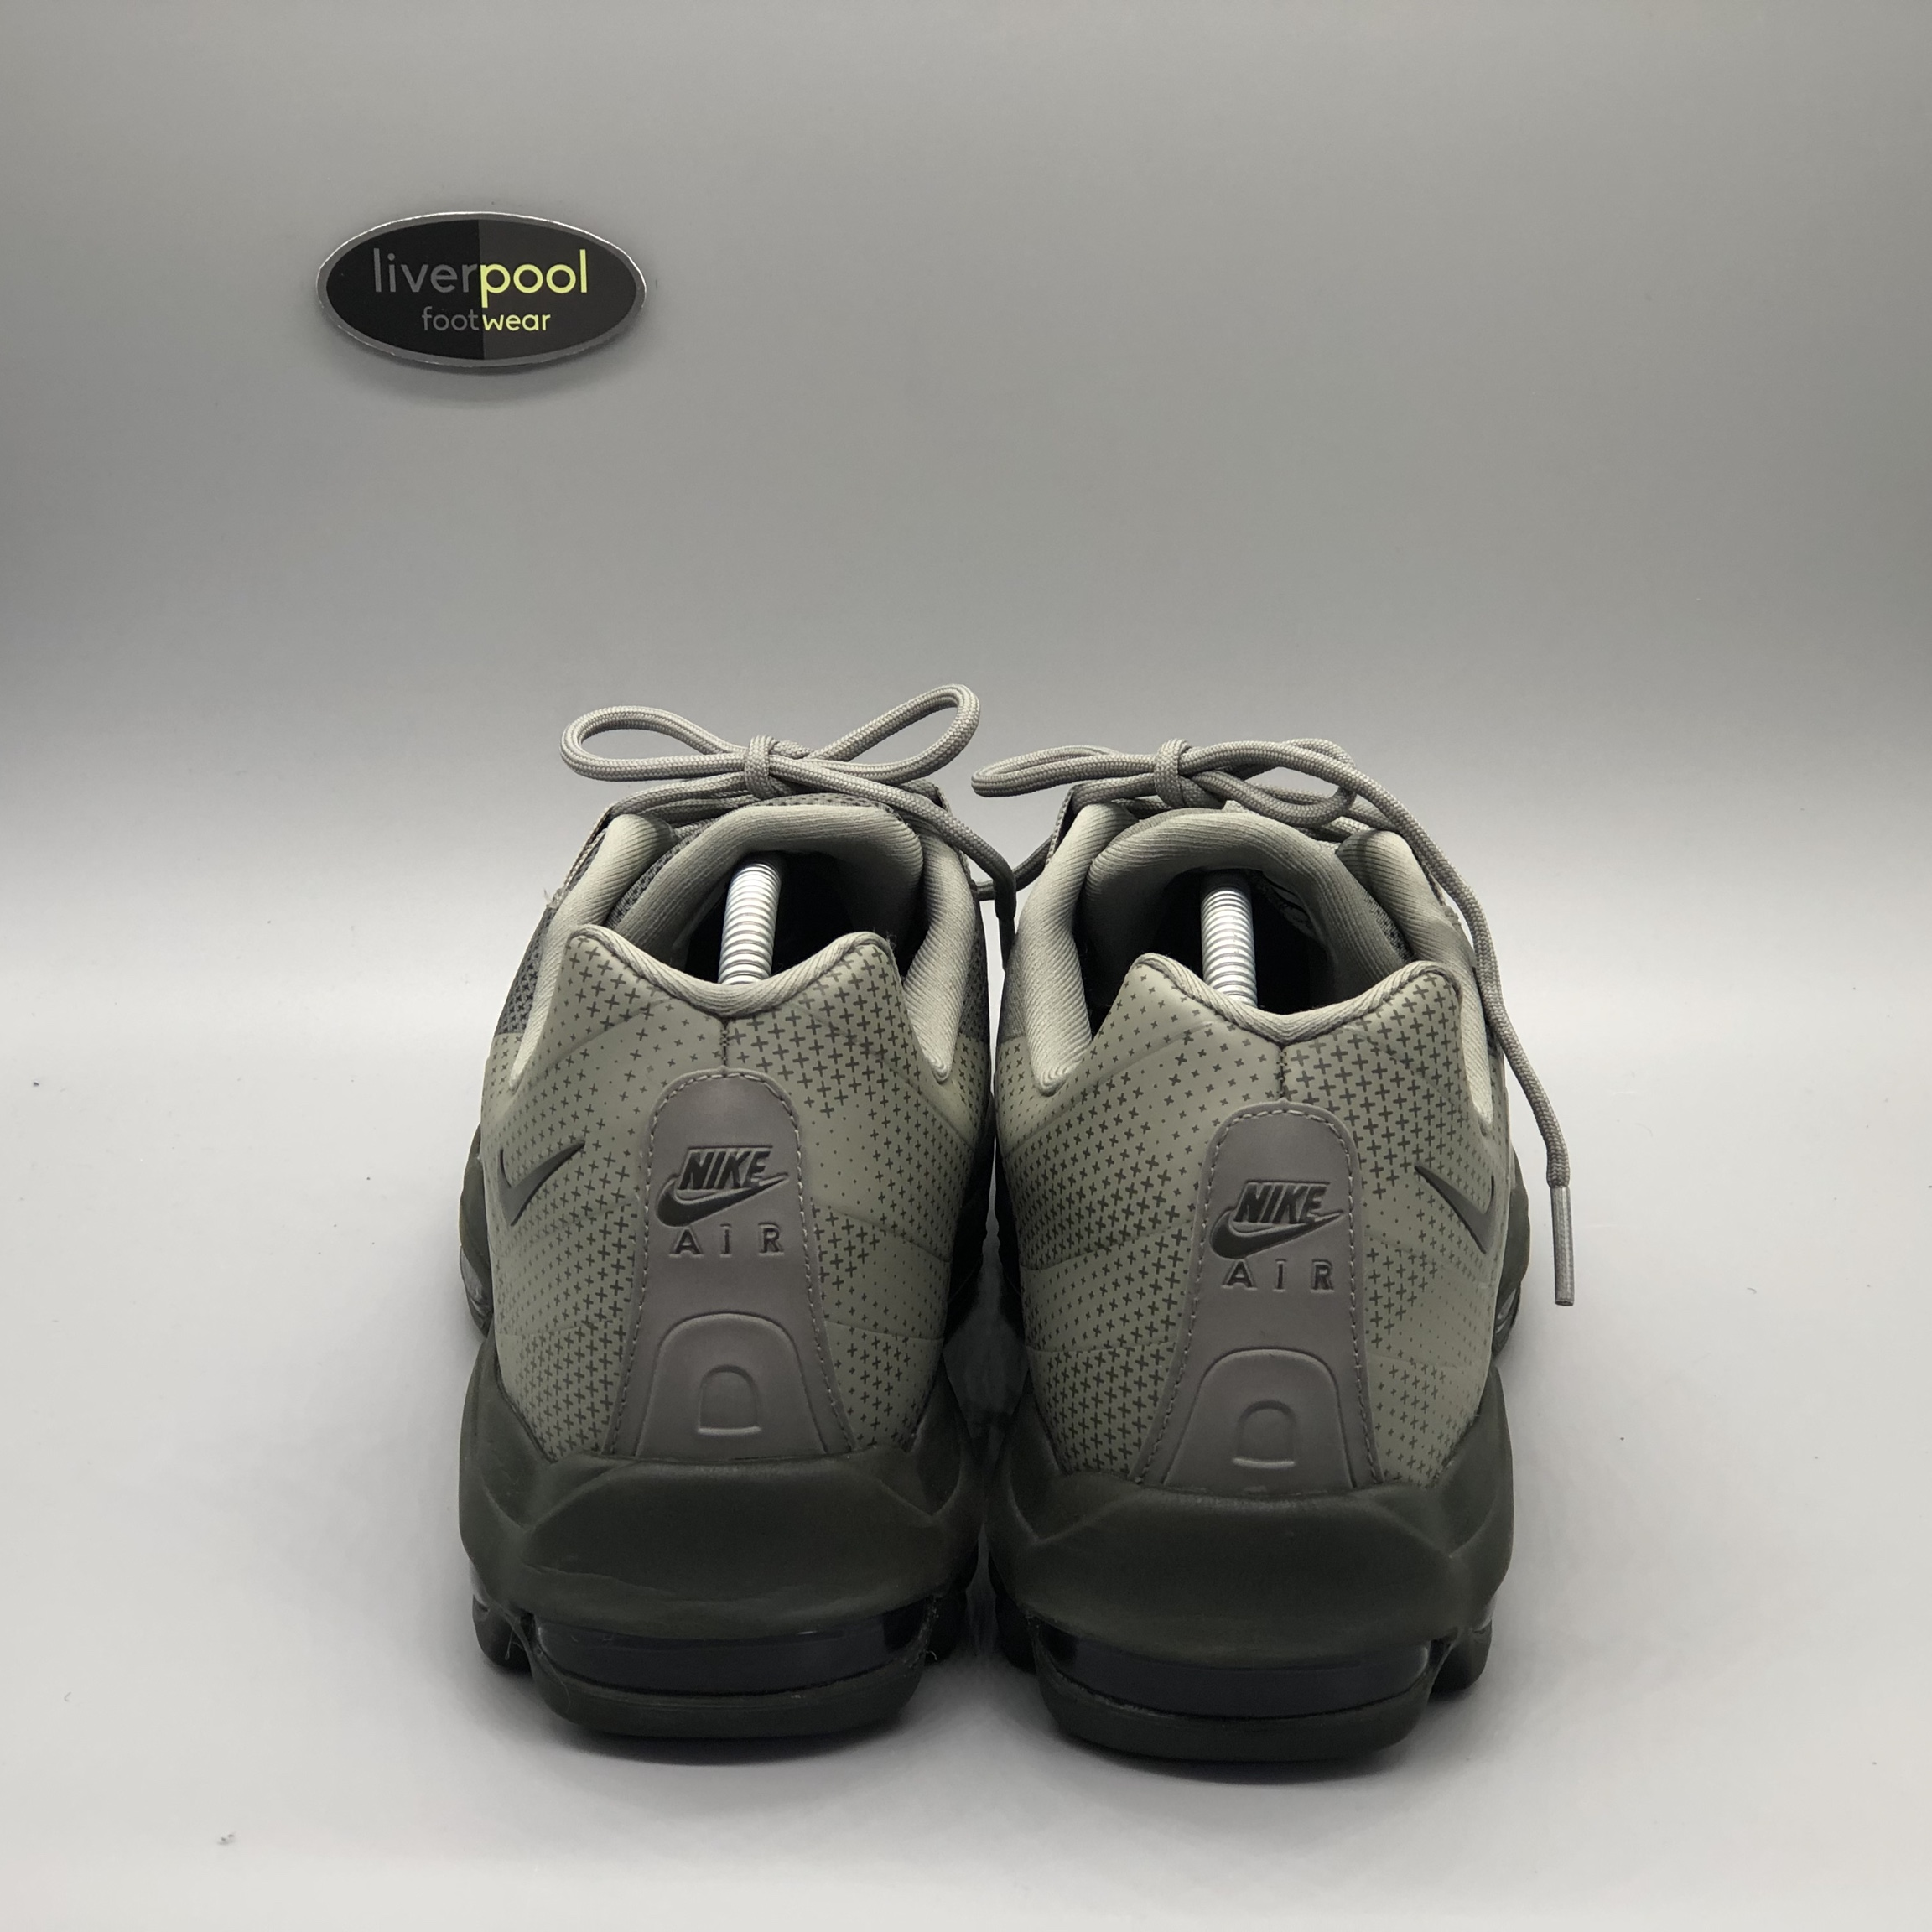 Nike Air Max 95 No sew Digital Camo Forest green Depop